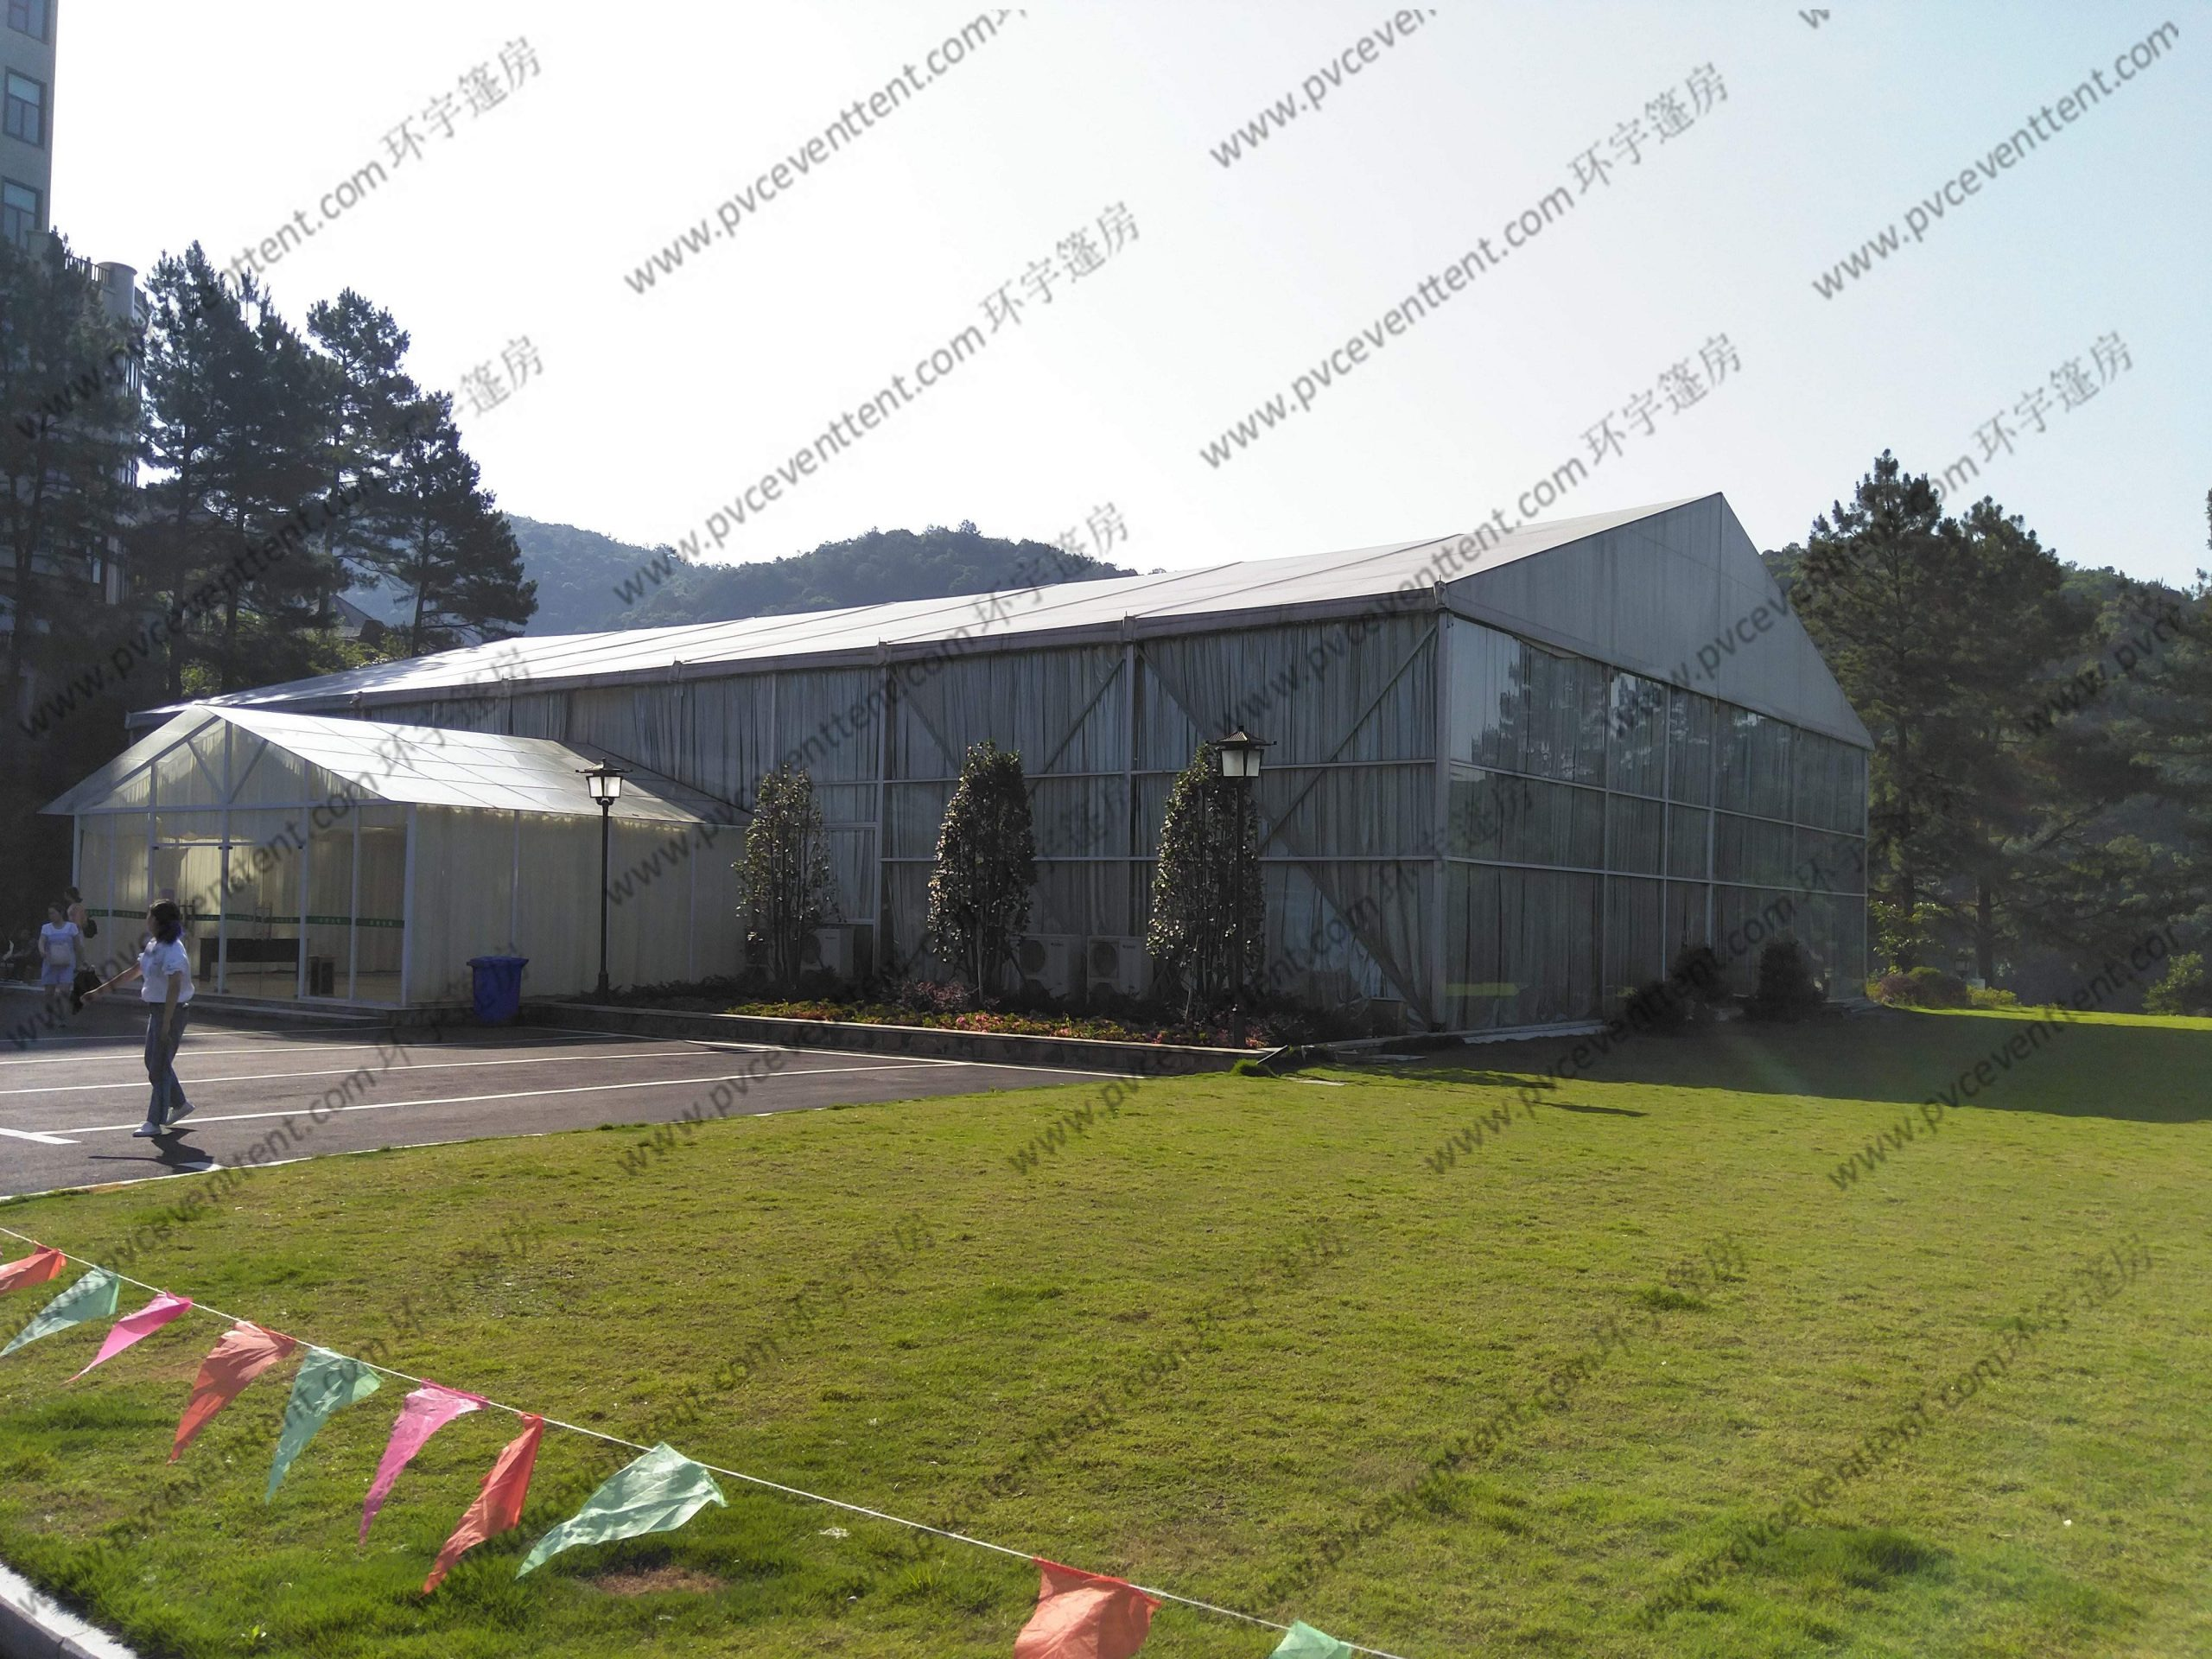 sale solid aluminum structures wedding party tent in garden 25 x 75m more than 500 people